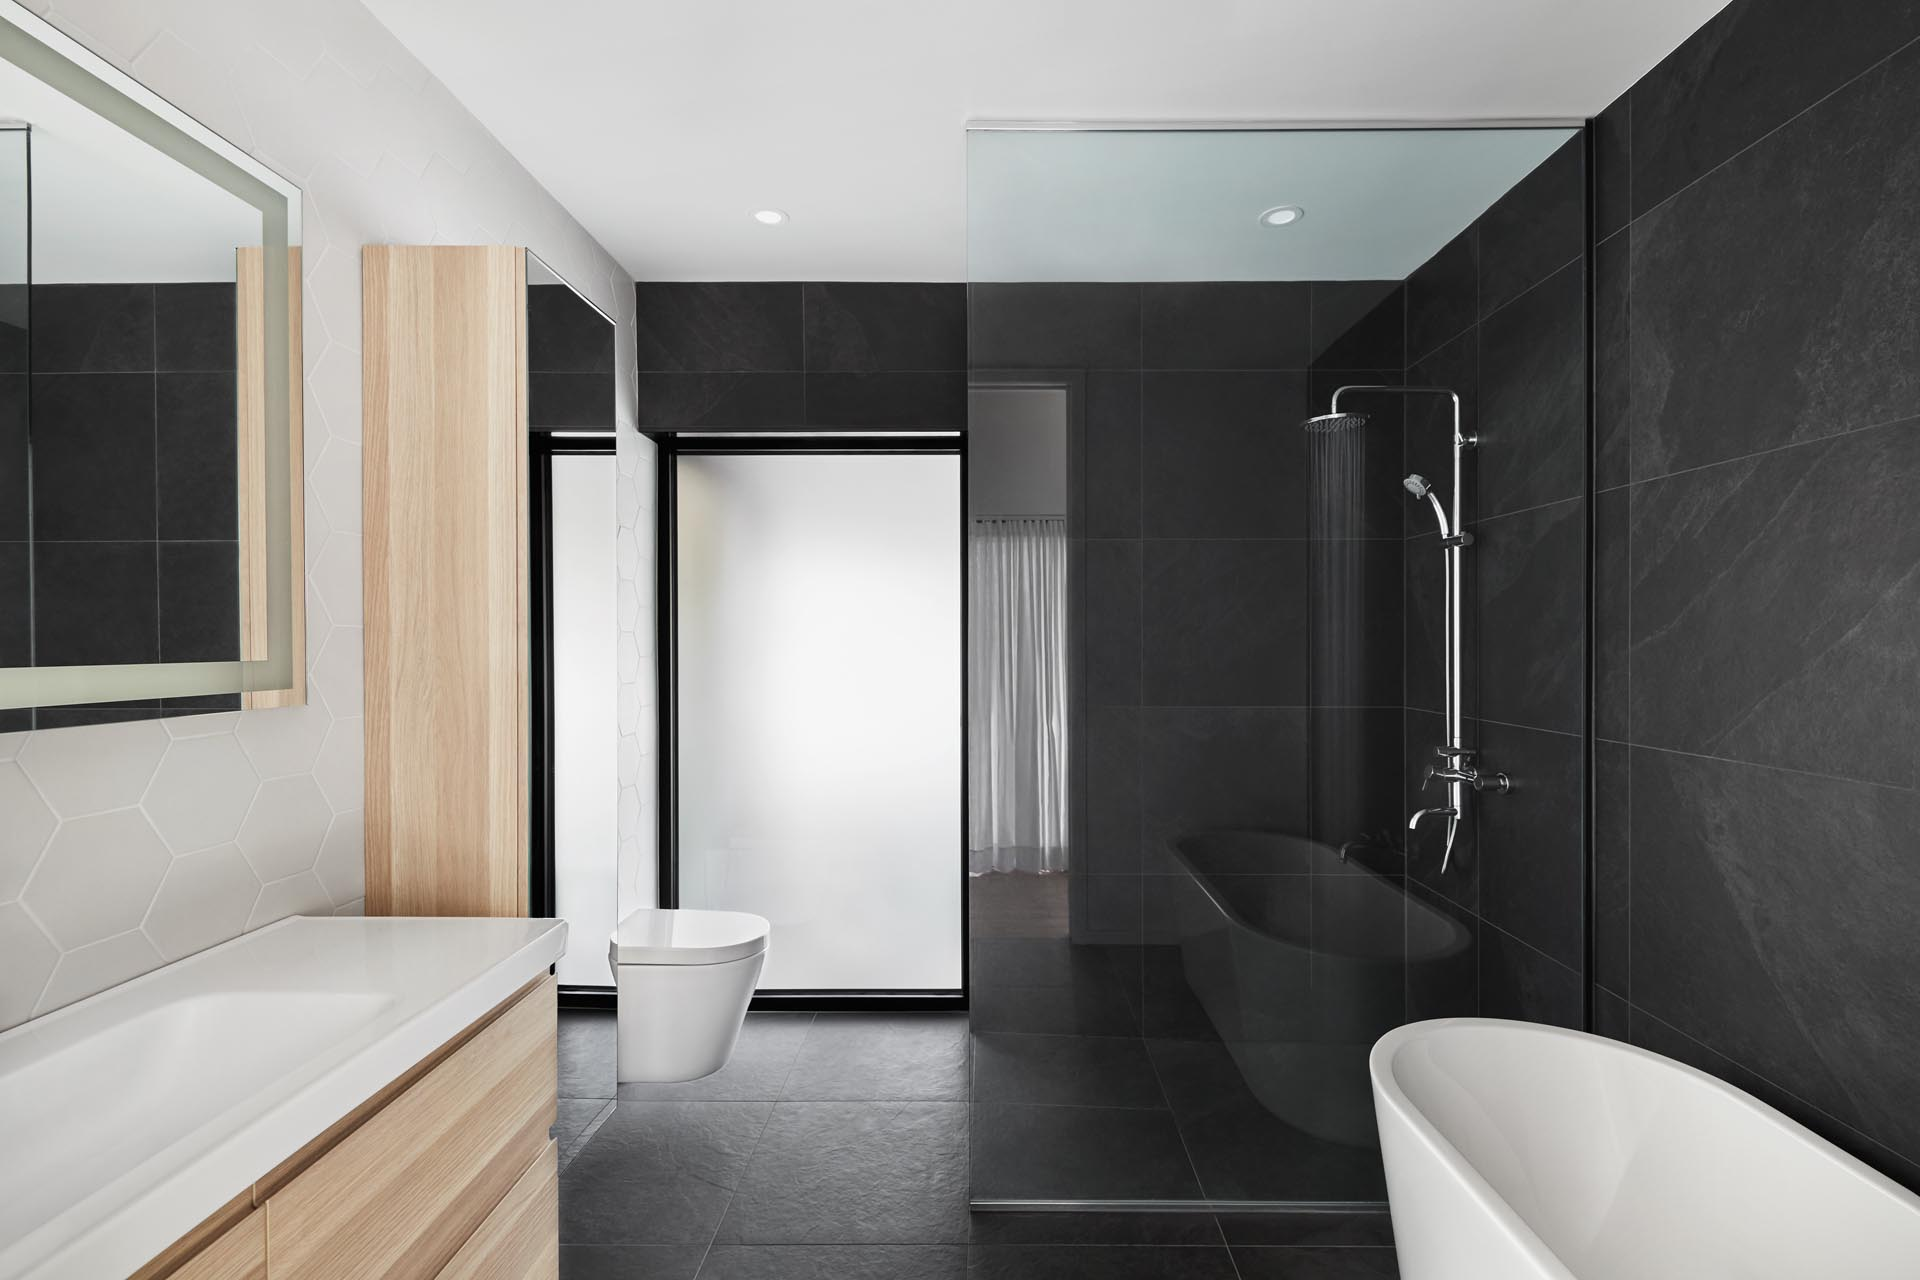 In this modern bathroom, large format black tiles cover two of the walls, while there's a light wood vanity, and a wall of white hexagonal tiles.